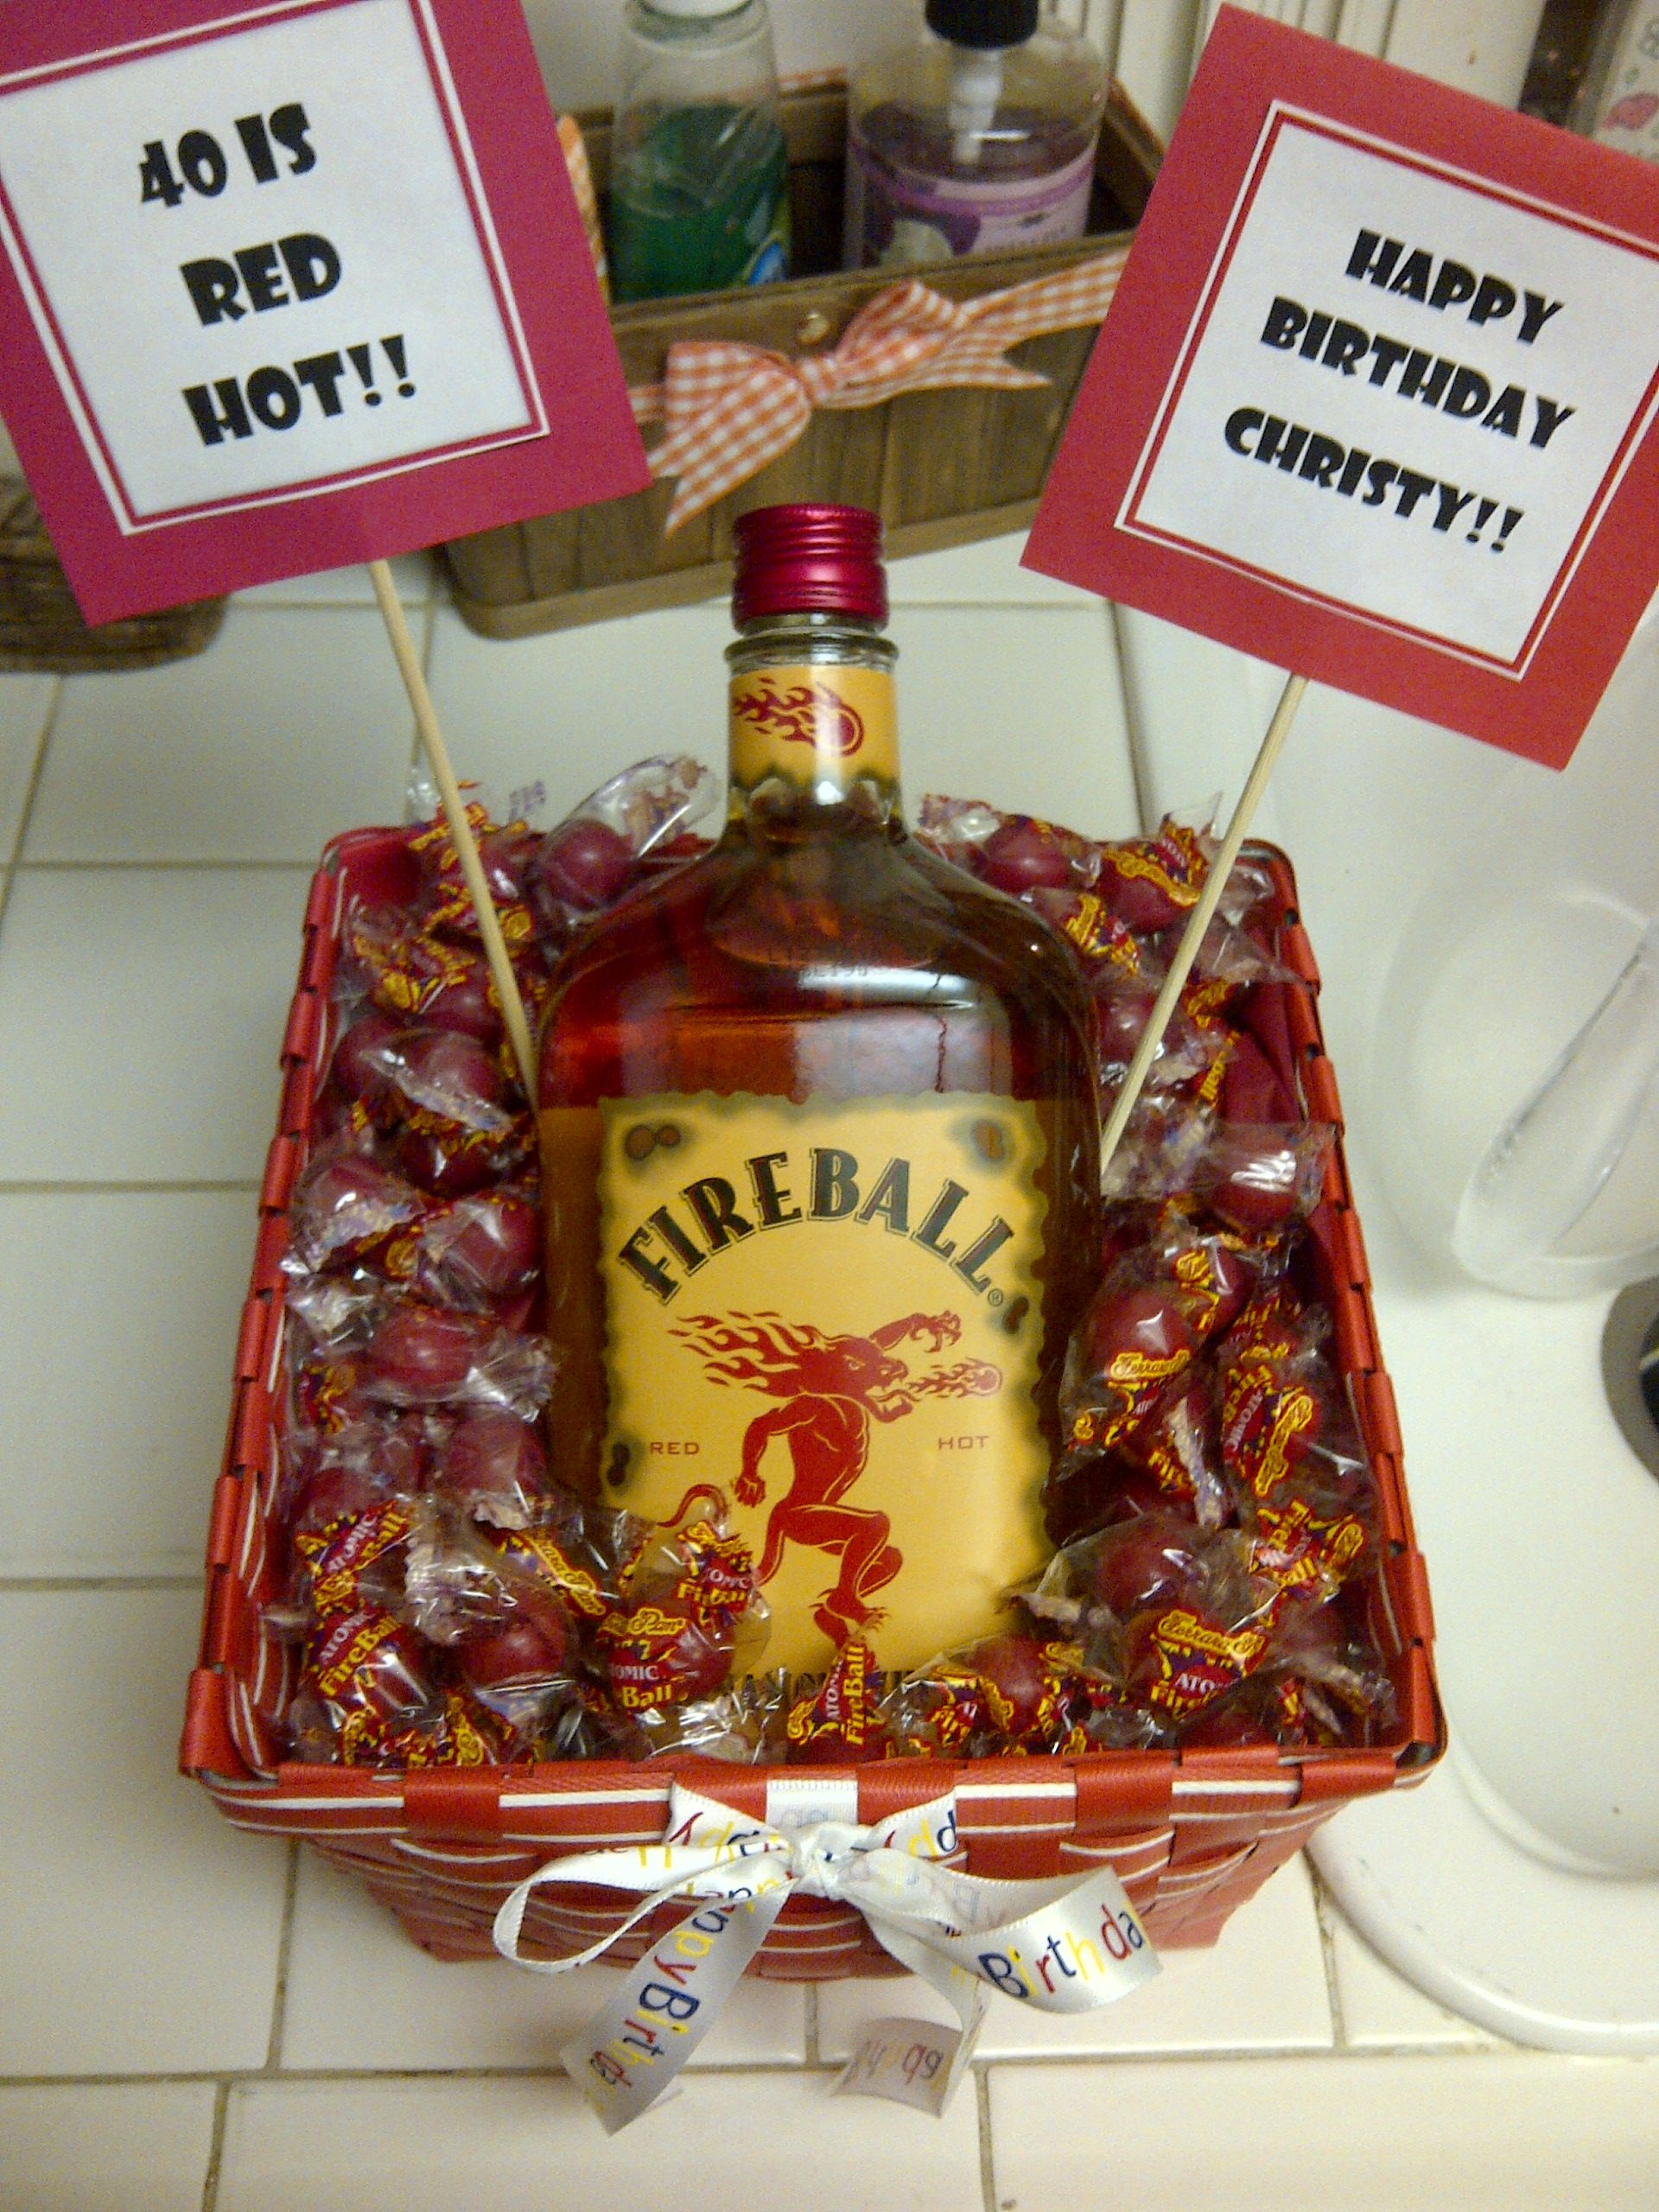 40 is red hot fireball cinnamon whiskey with atomic